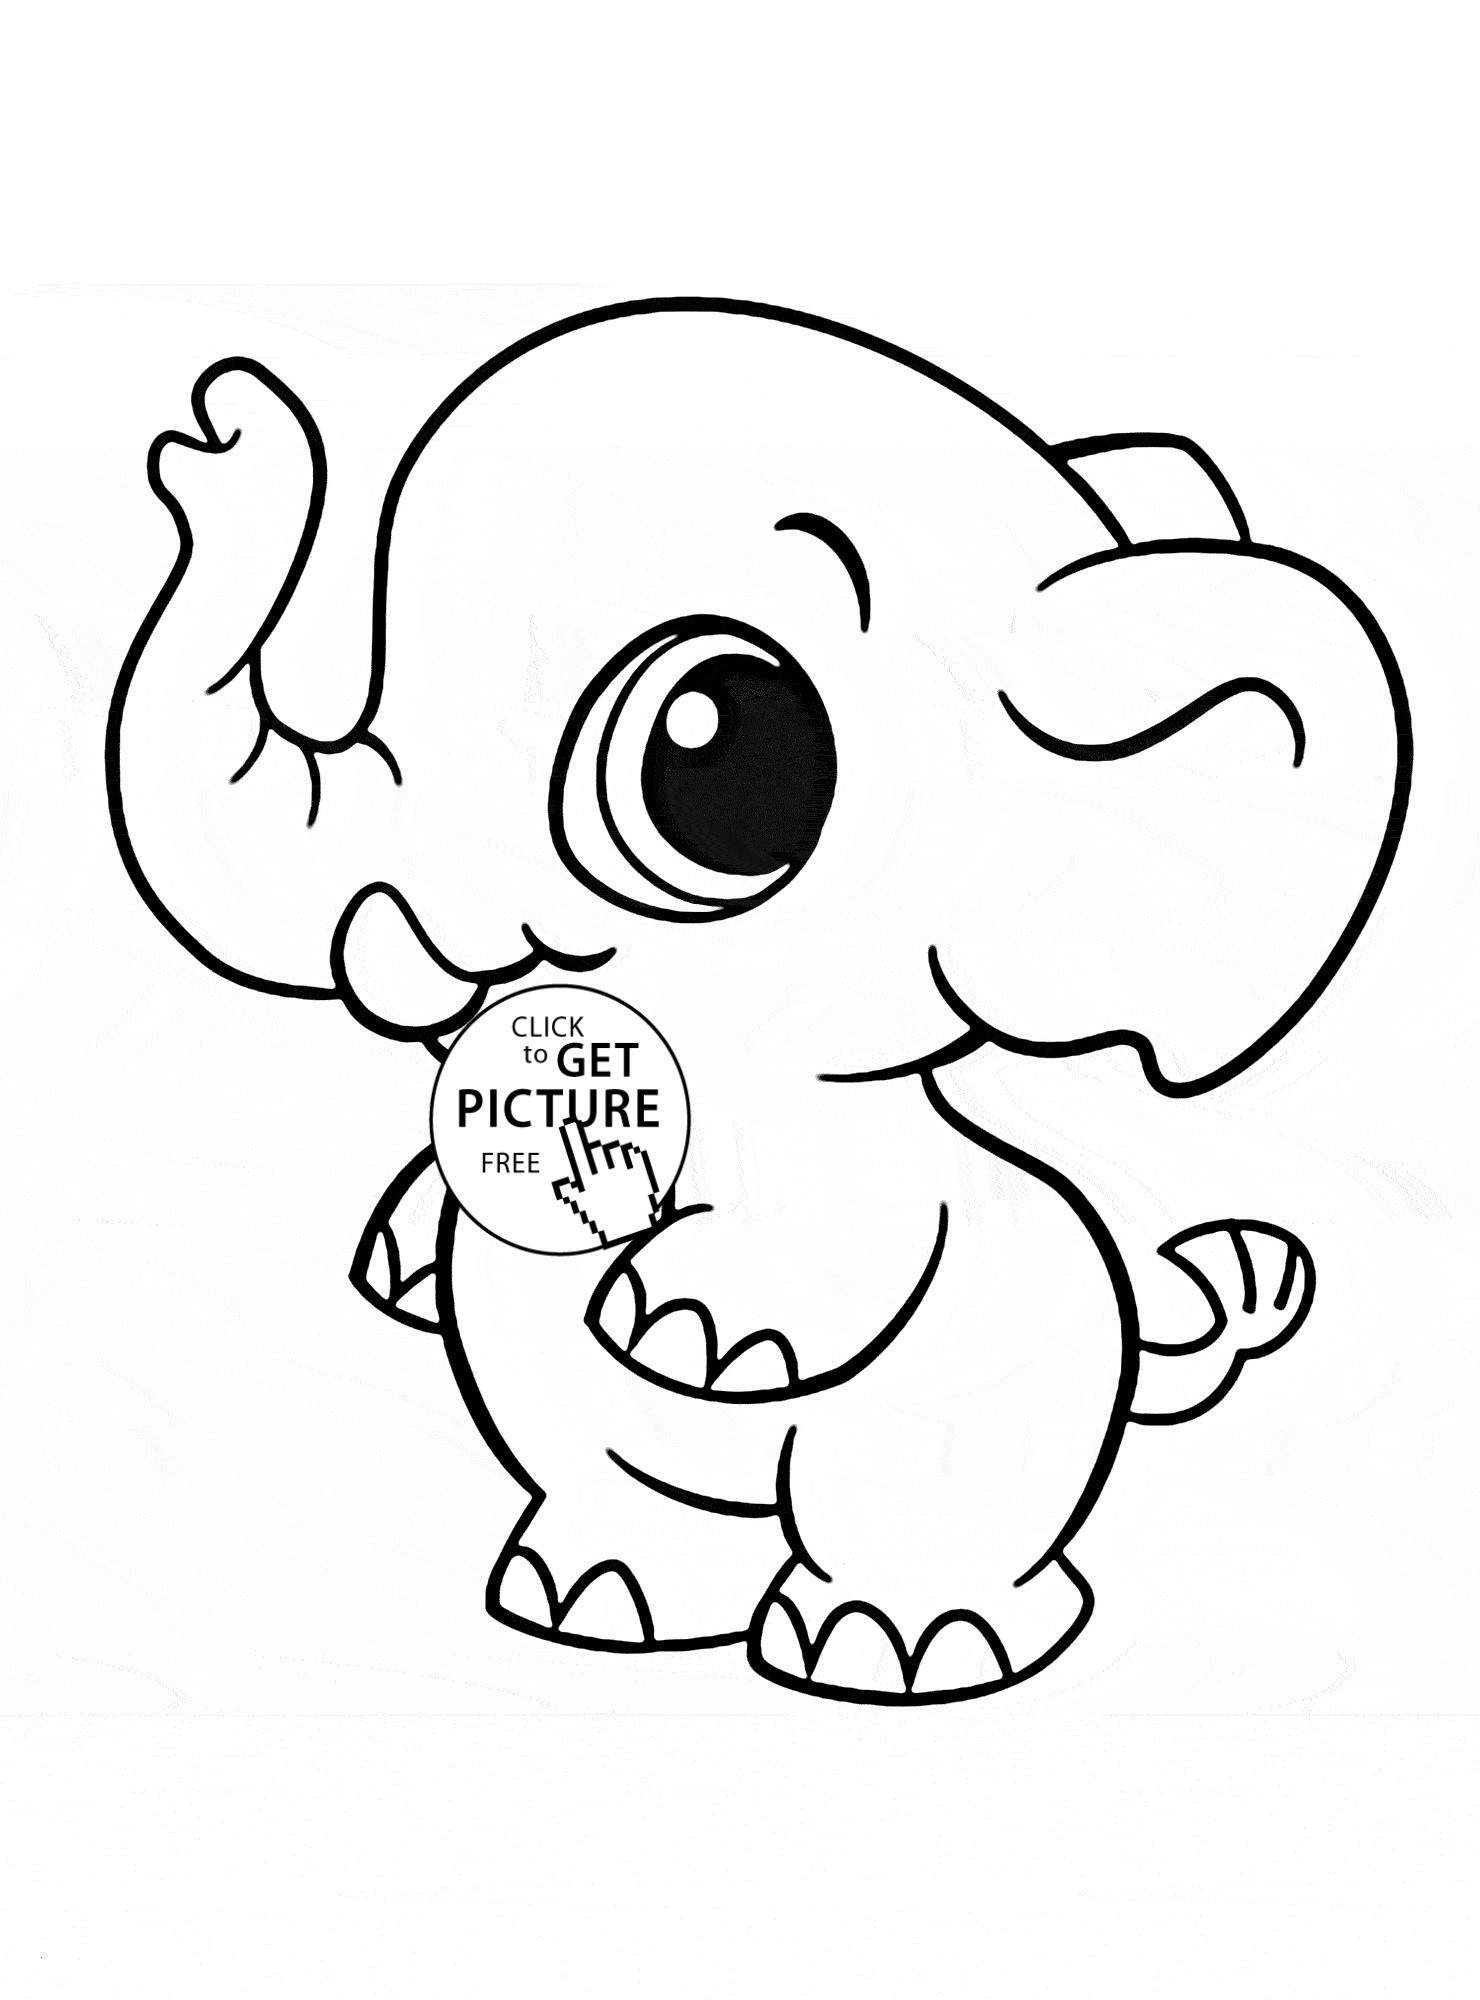 cute-baby-animal-coloring-pages-dragoart-of-cute-baby-animal-coloring-pages-dragoart Cute Baby Animal Coloring Pages Dragoart Animal